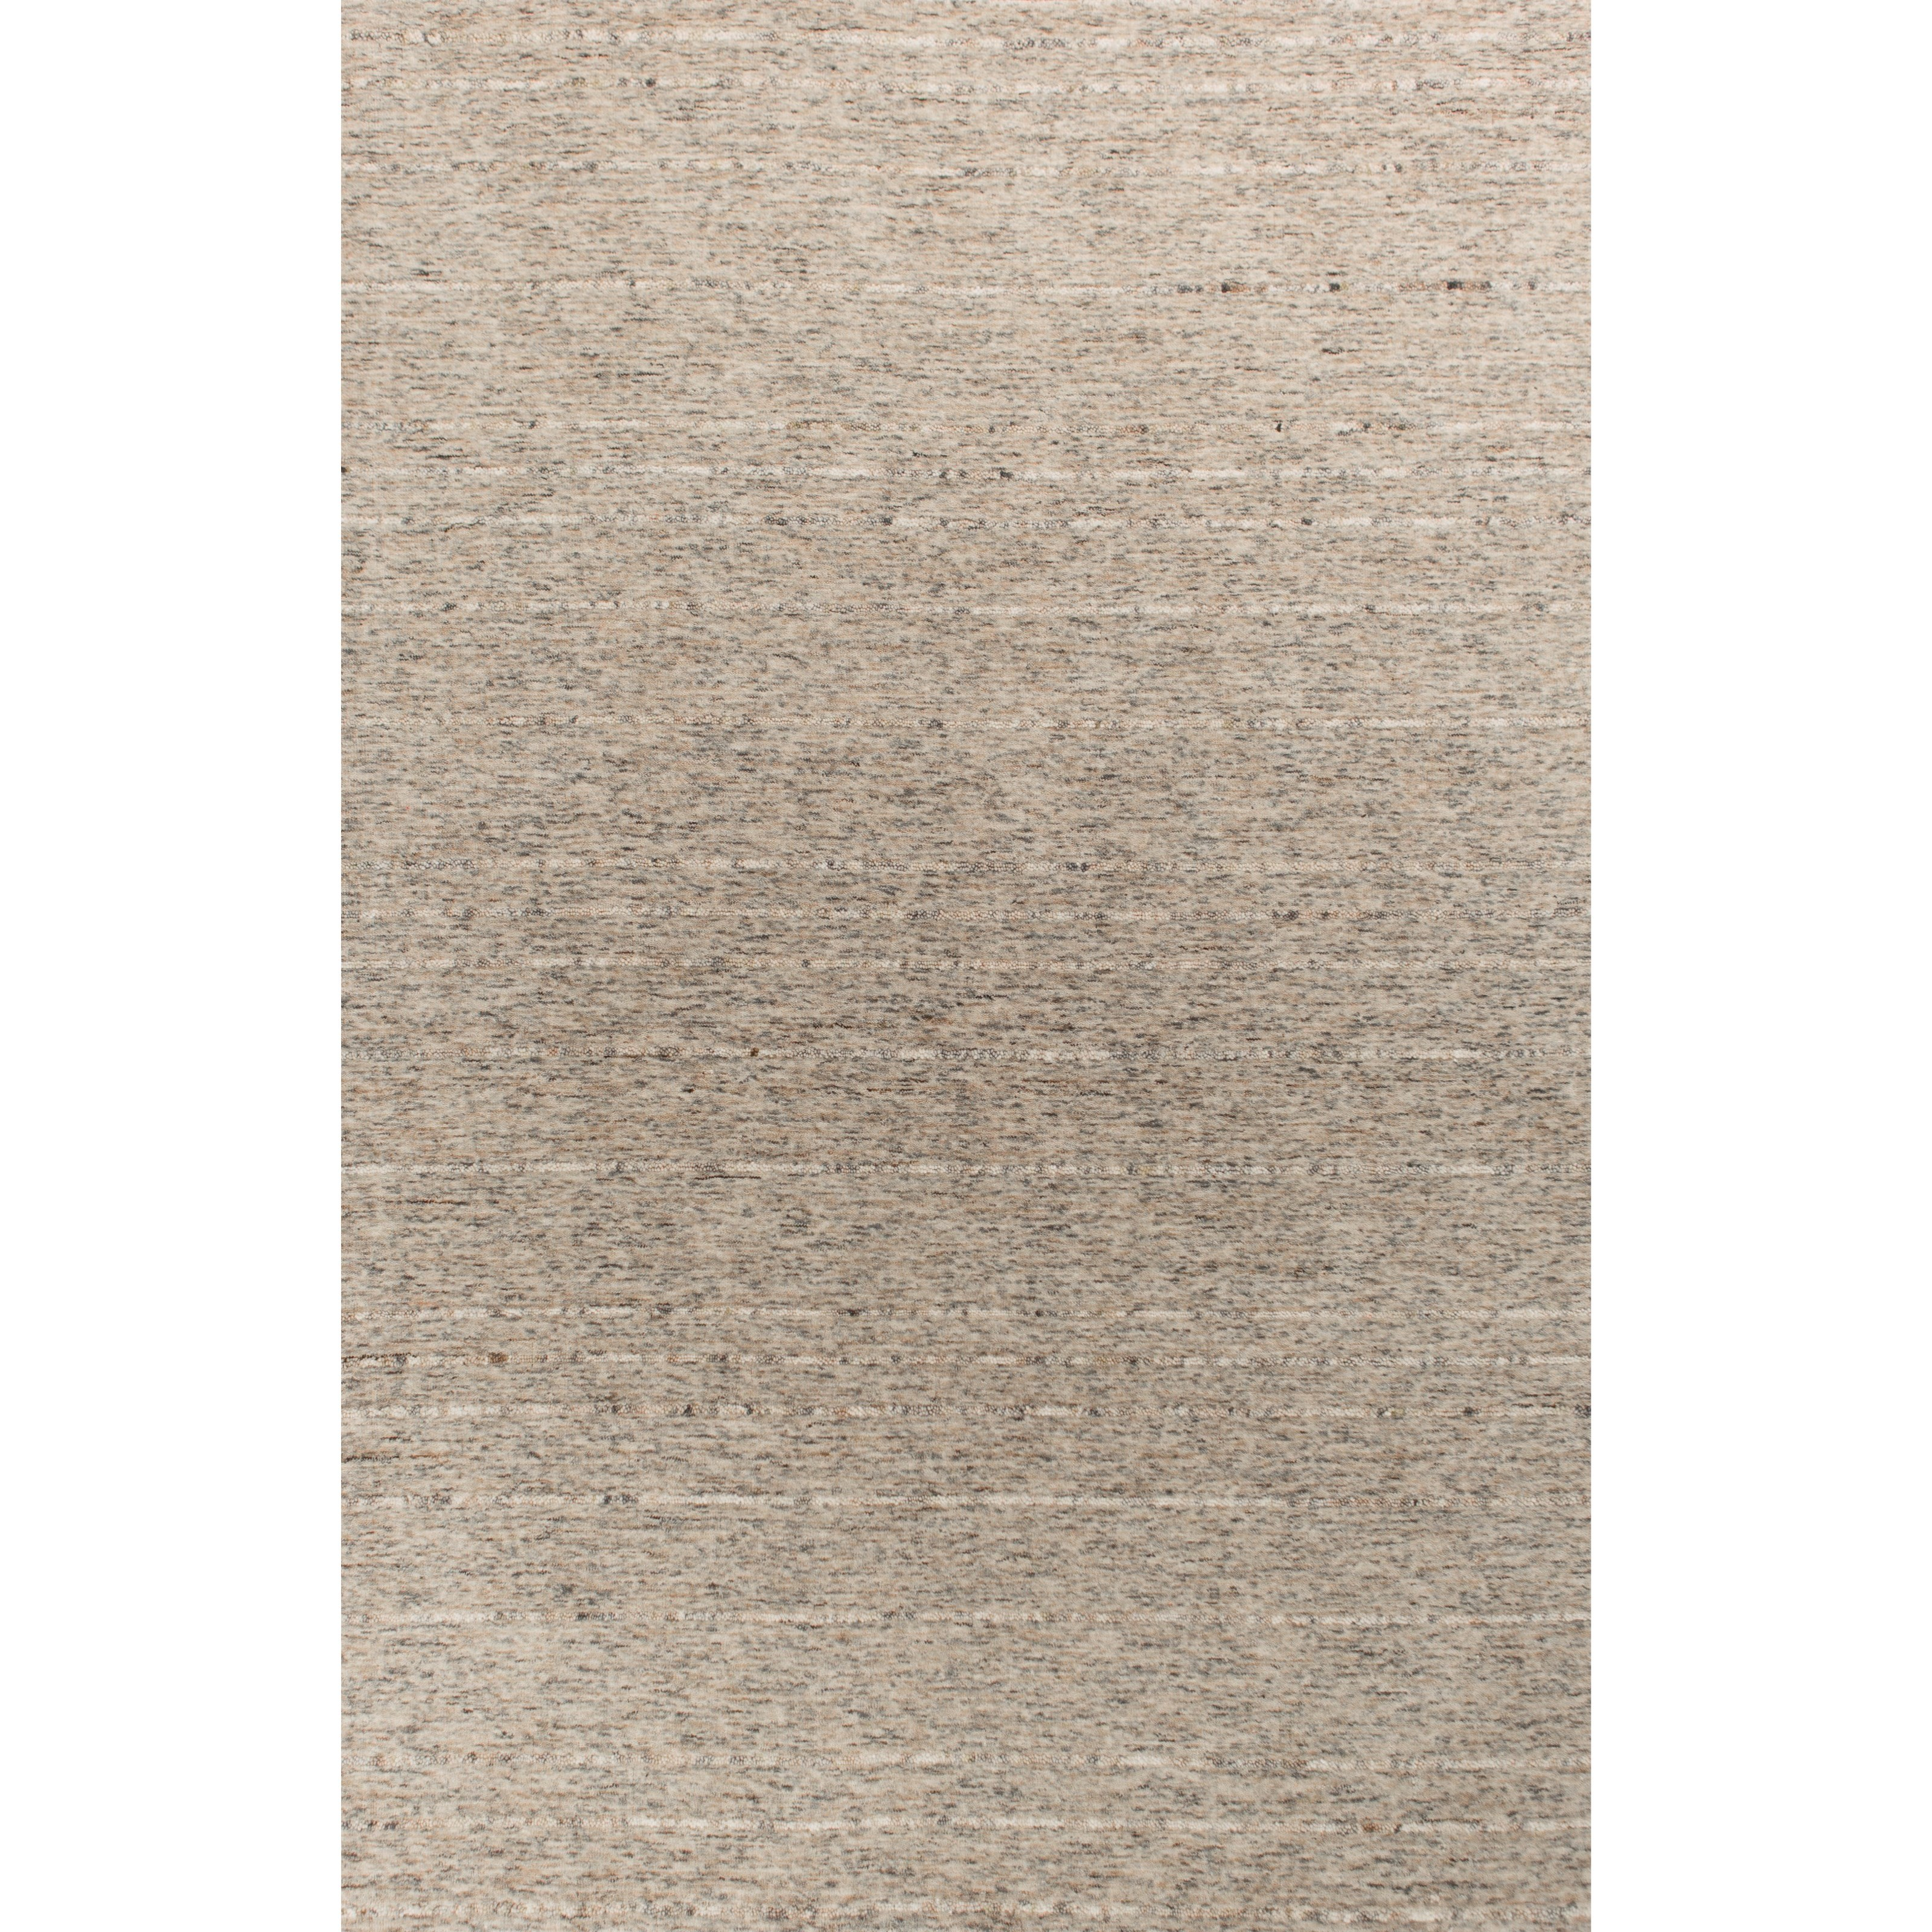 Parker 5' x 7' Beige Elements Rug by Kas at Zak's Home